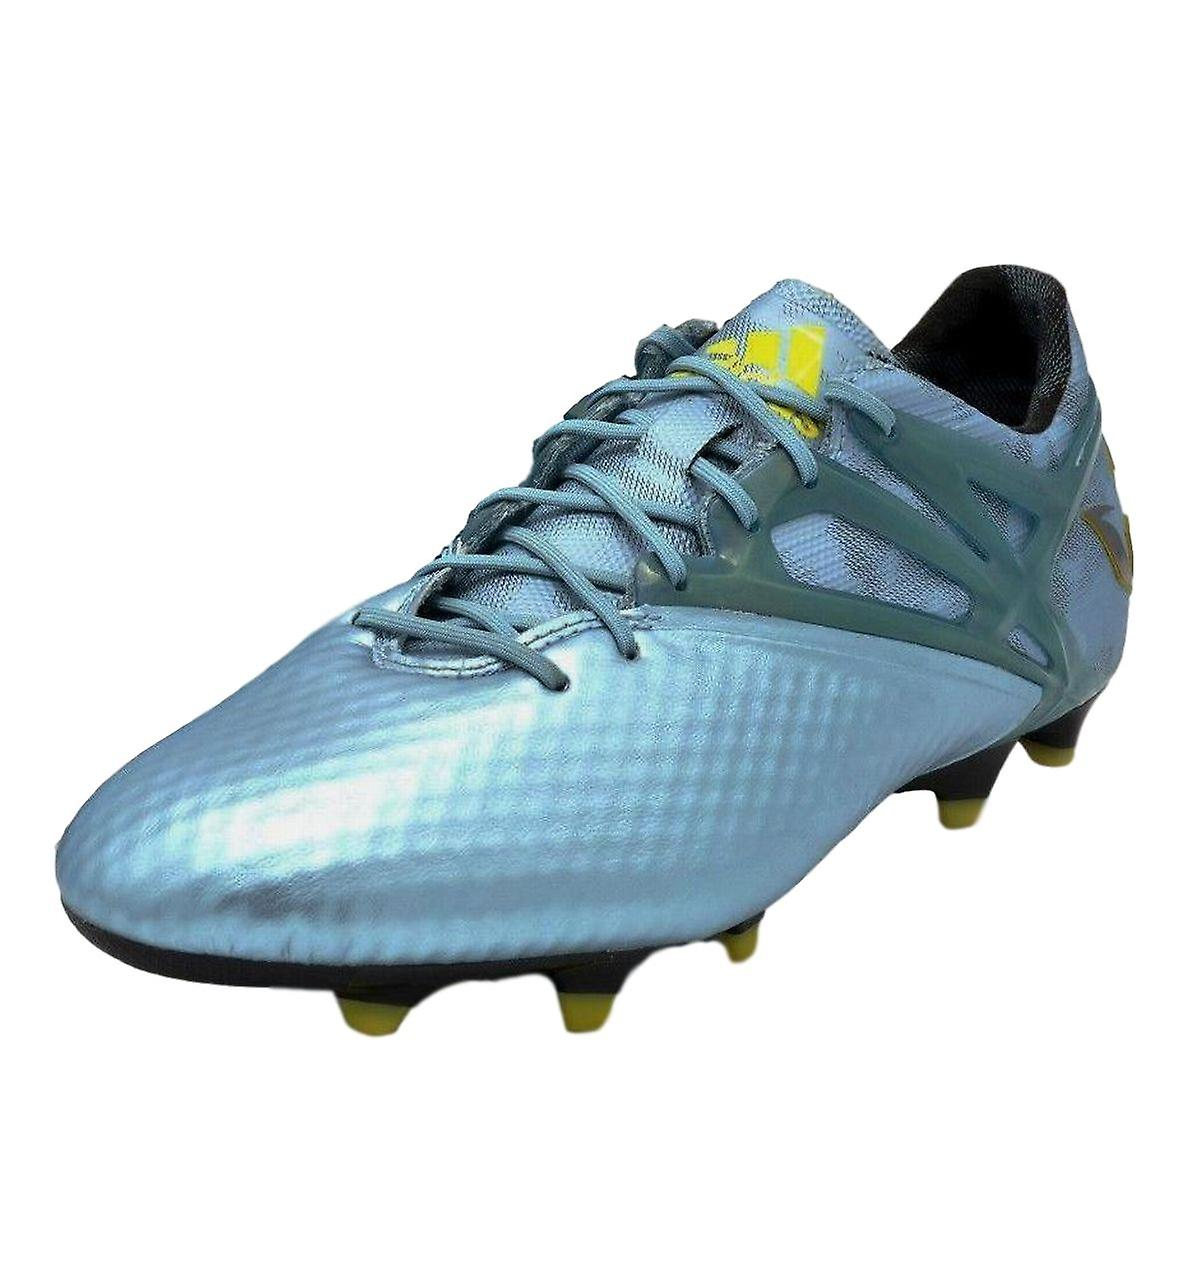 adidas Men's Messi 15.1 FG/AG Firm / Artificial Ground Football Boots